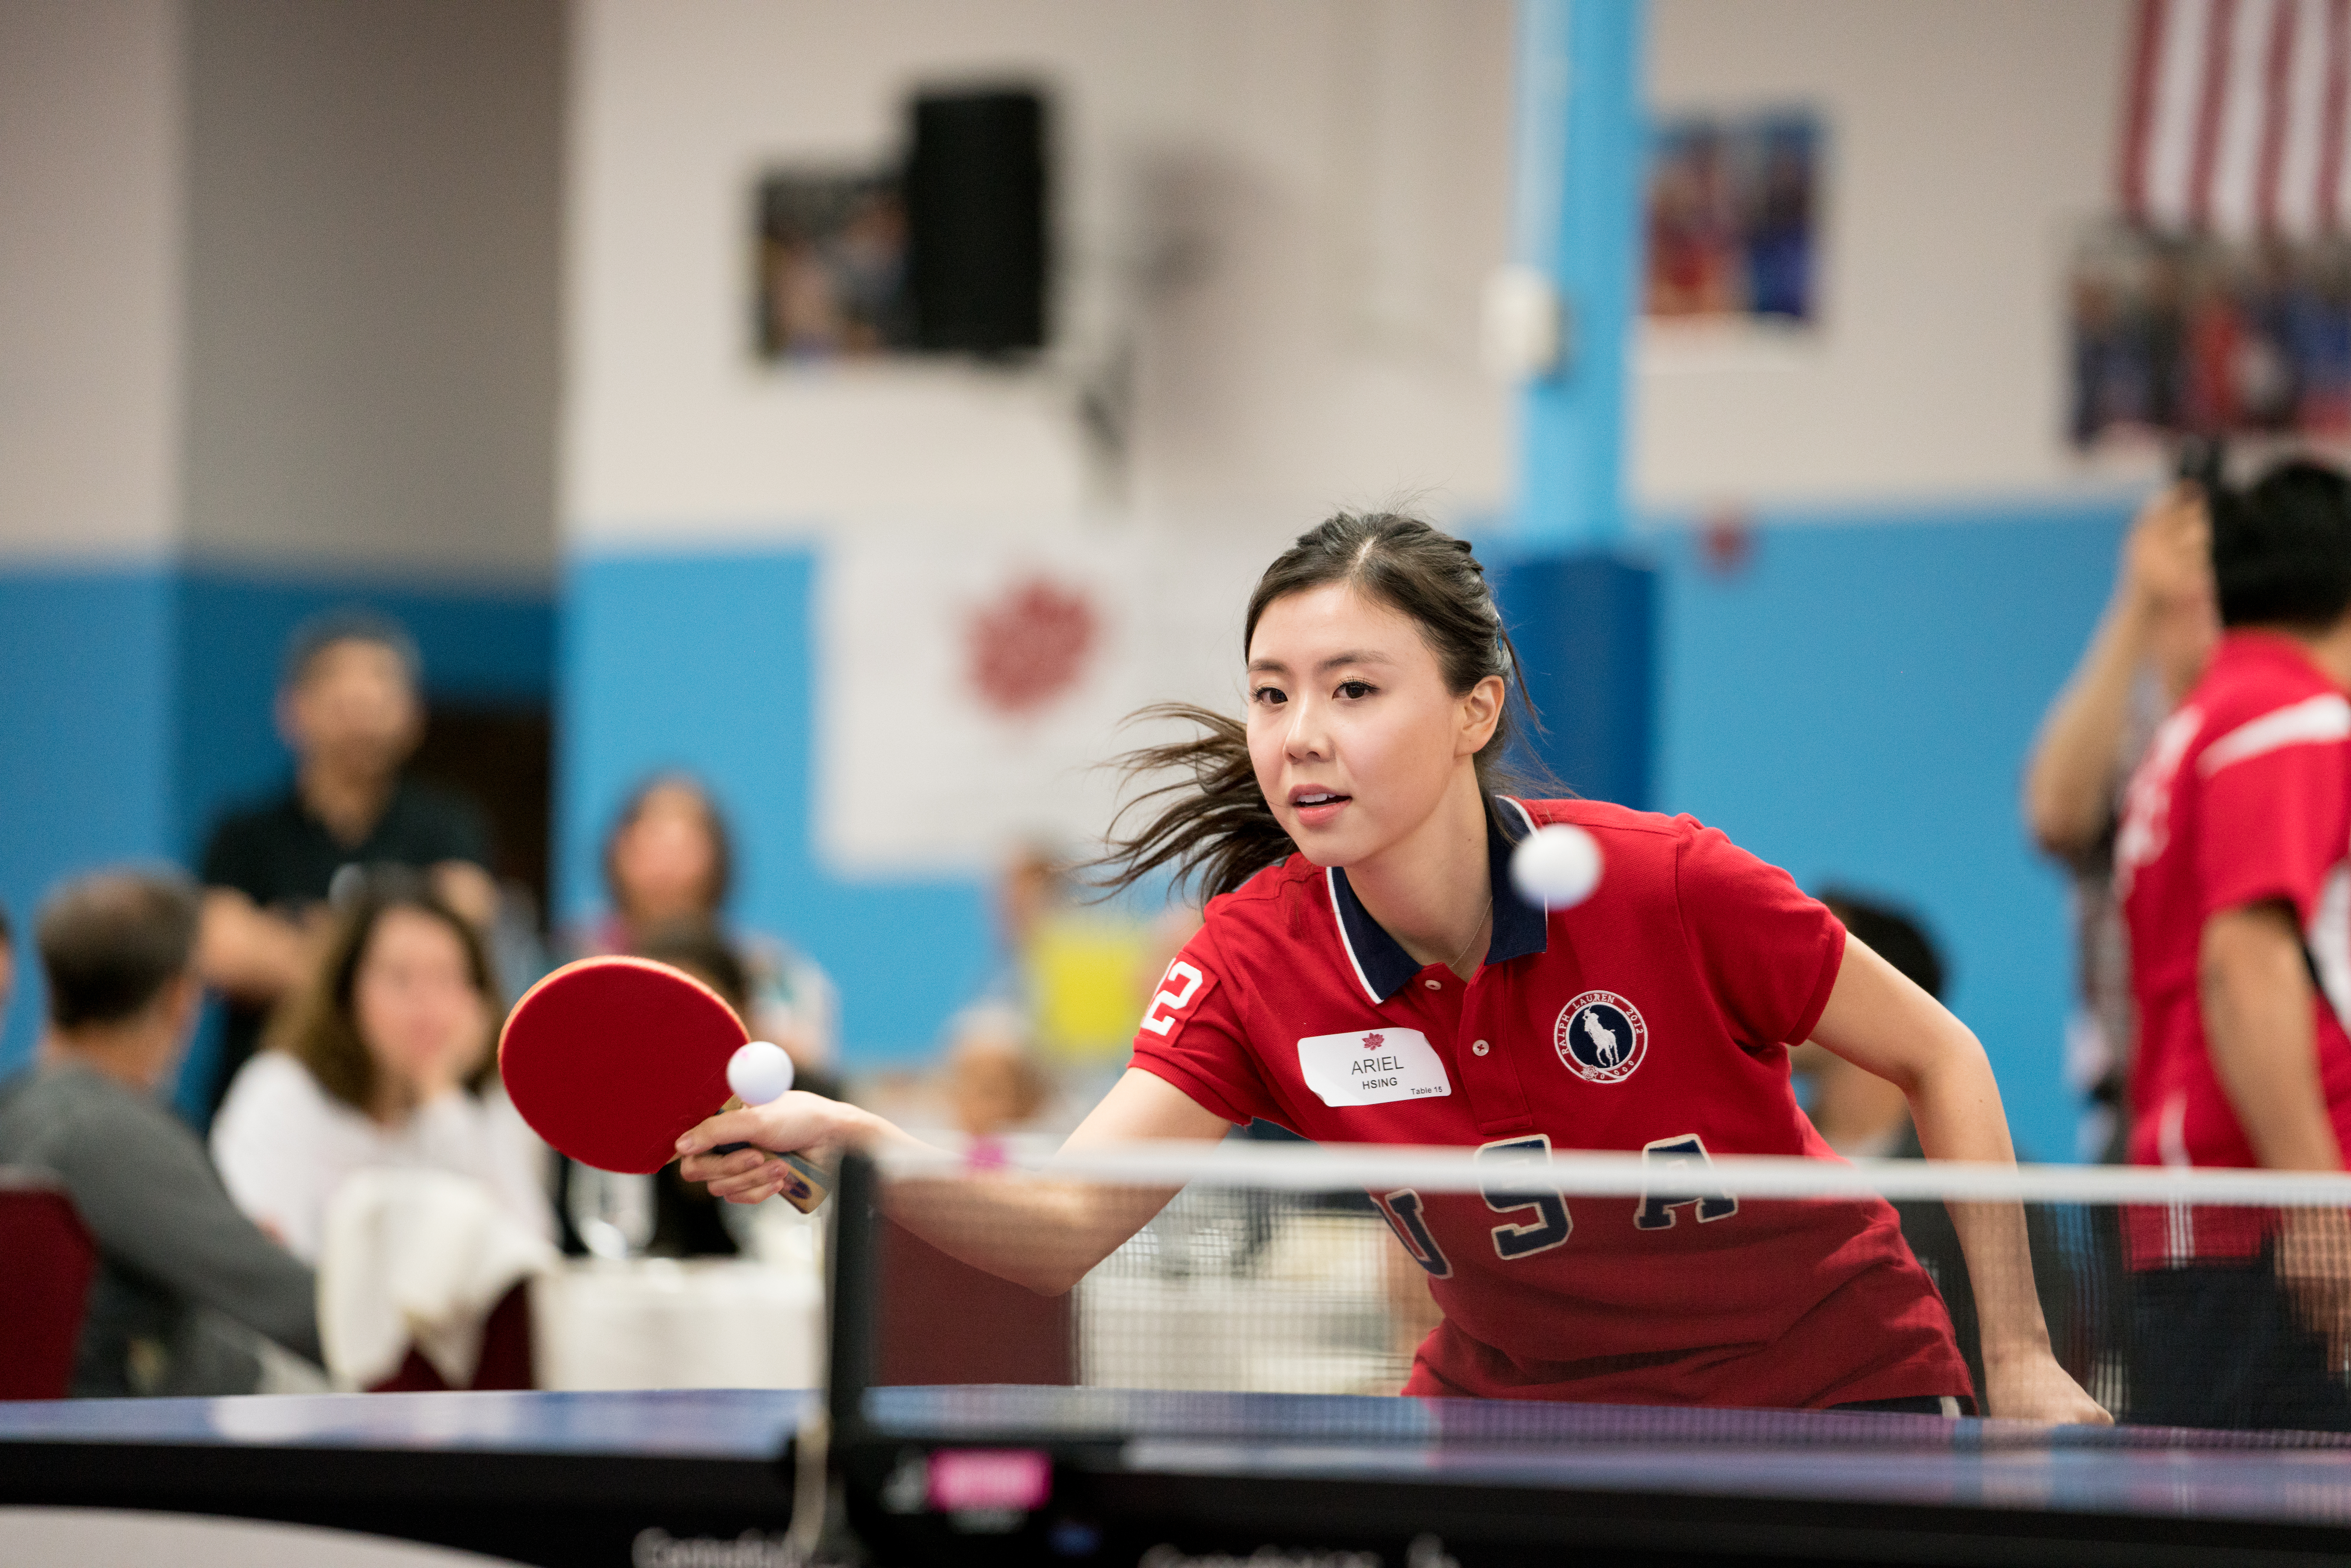 Competitive Table Tennis Losing its Underdog Status